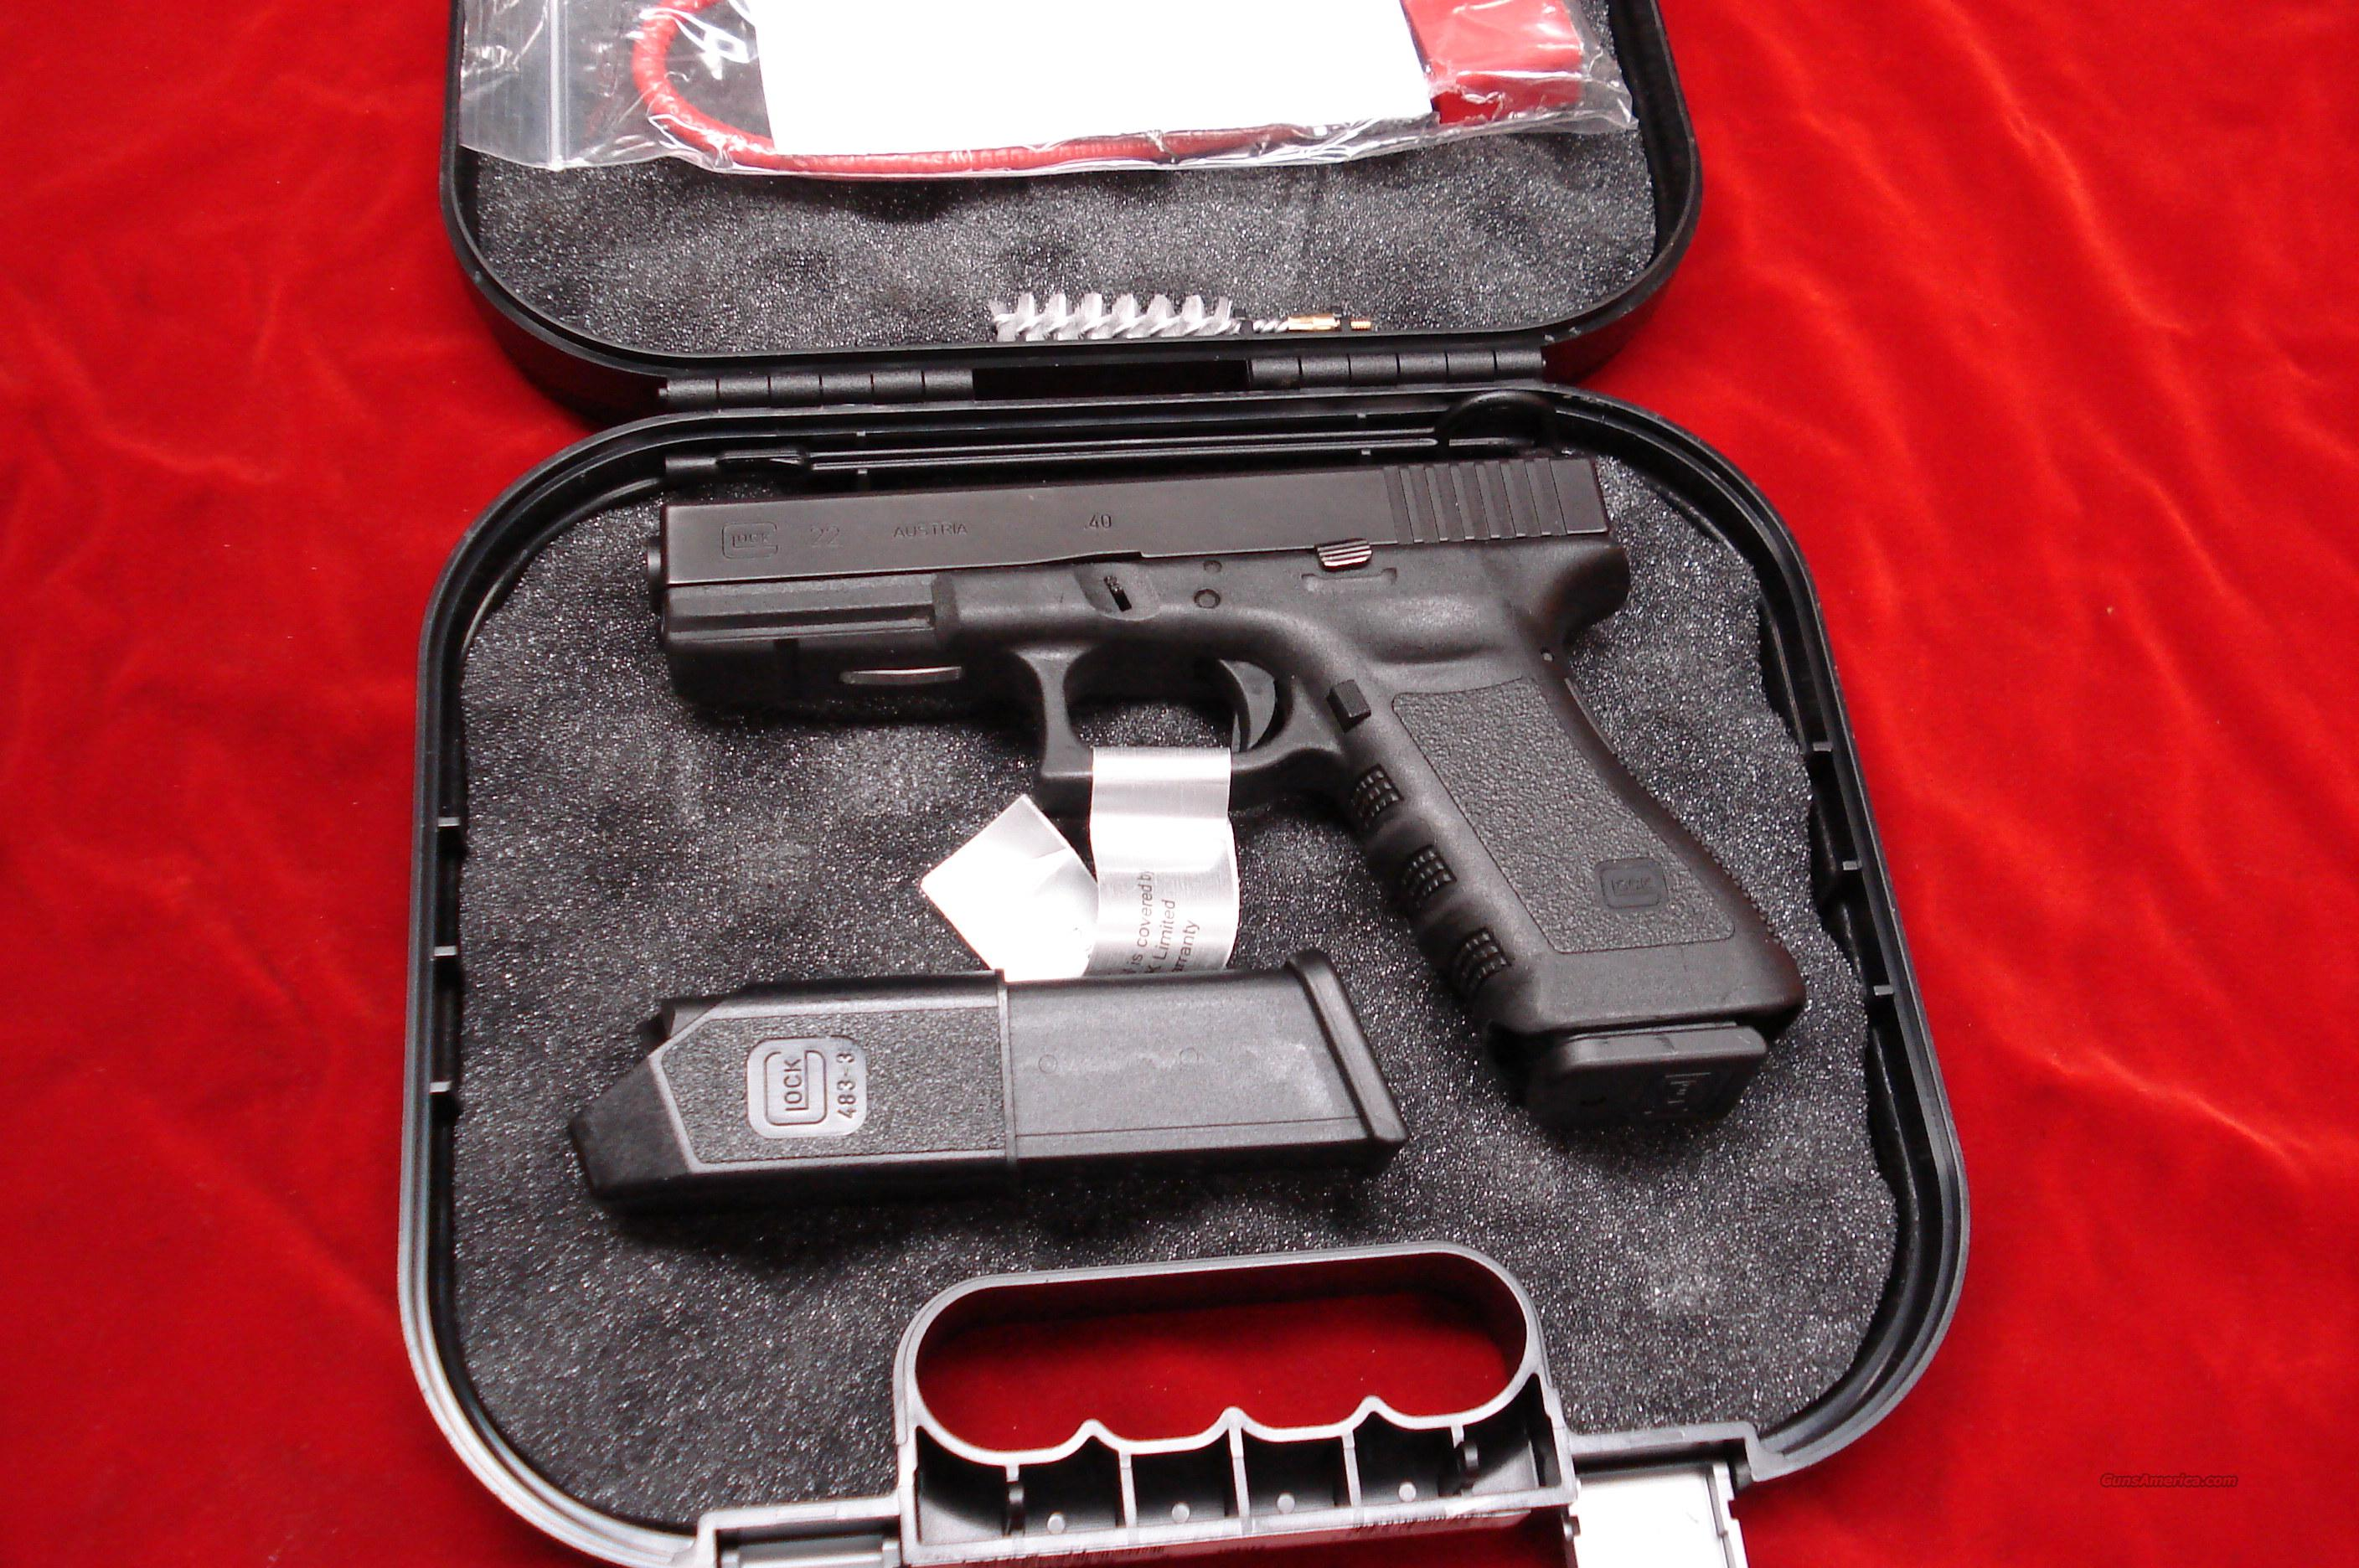 GLOCK MODEL 22 HIGH CAP FACTORY REBUILT  Guns > Pistols > Glock Pistols > 22